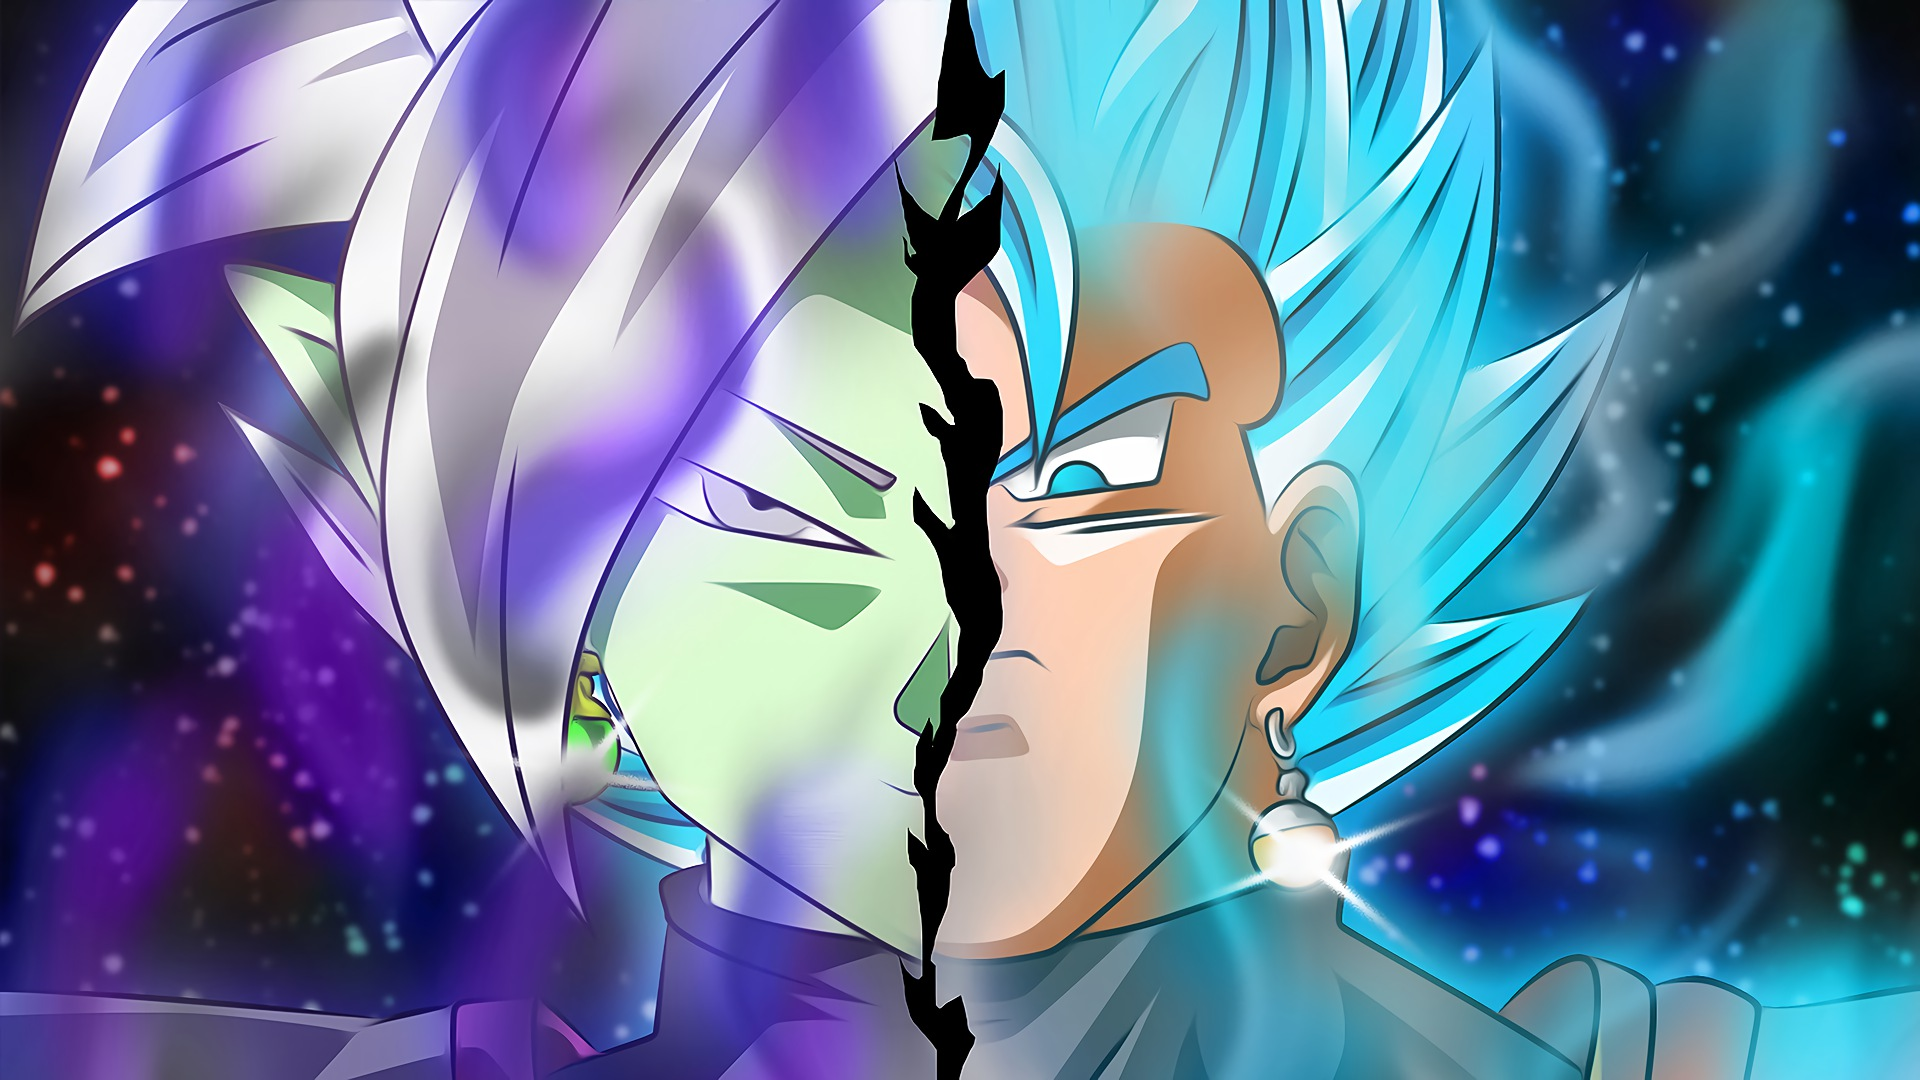 Dragon Ball Super Vegito And Fusion Zamasu Hd Wallpaper